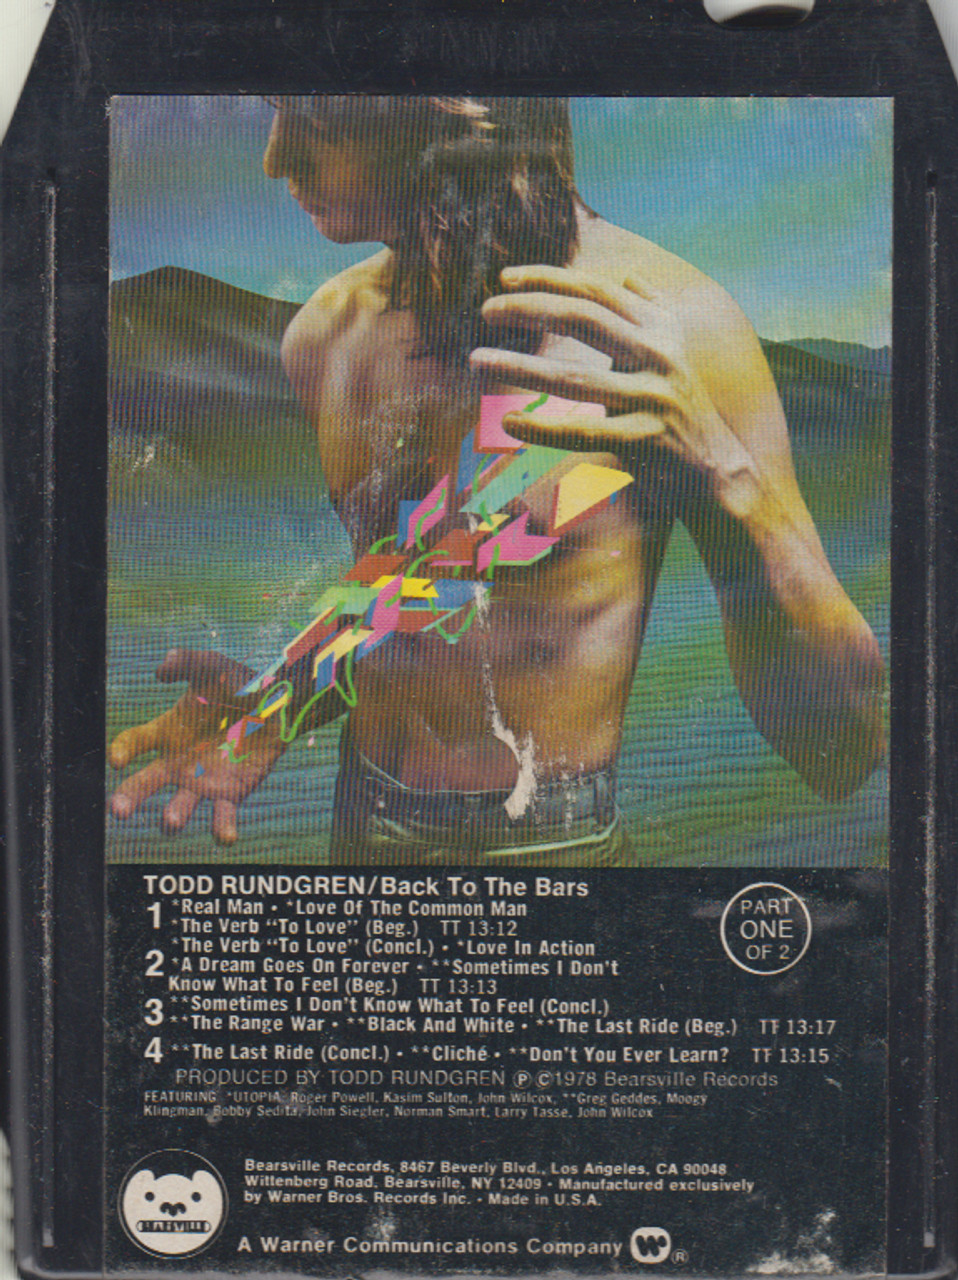 Todd Rundgren: Back to the Bars - Part One -33645 8 Track Tape